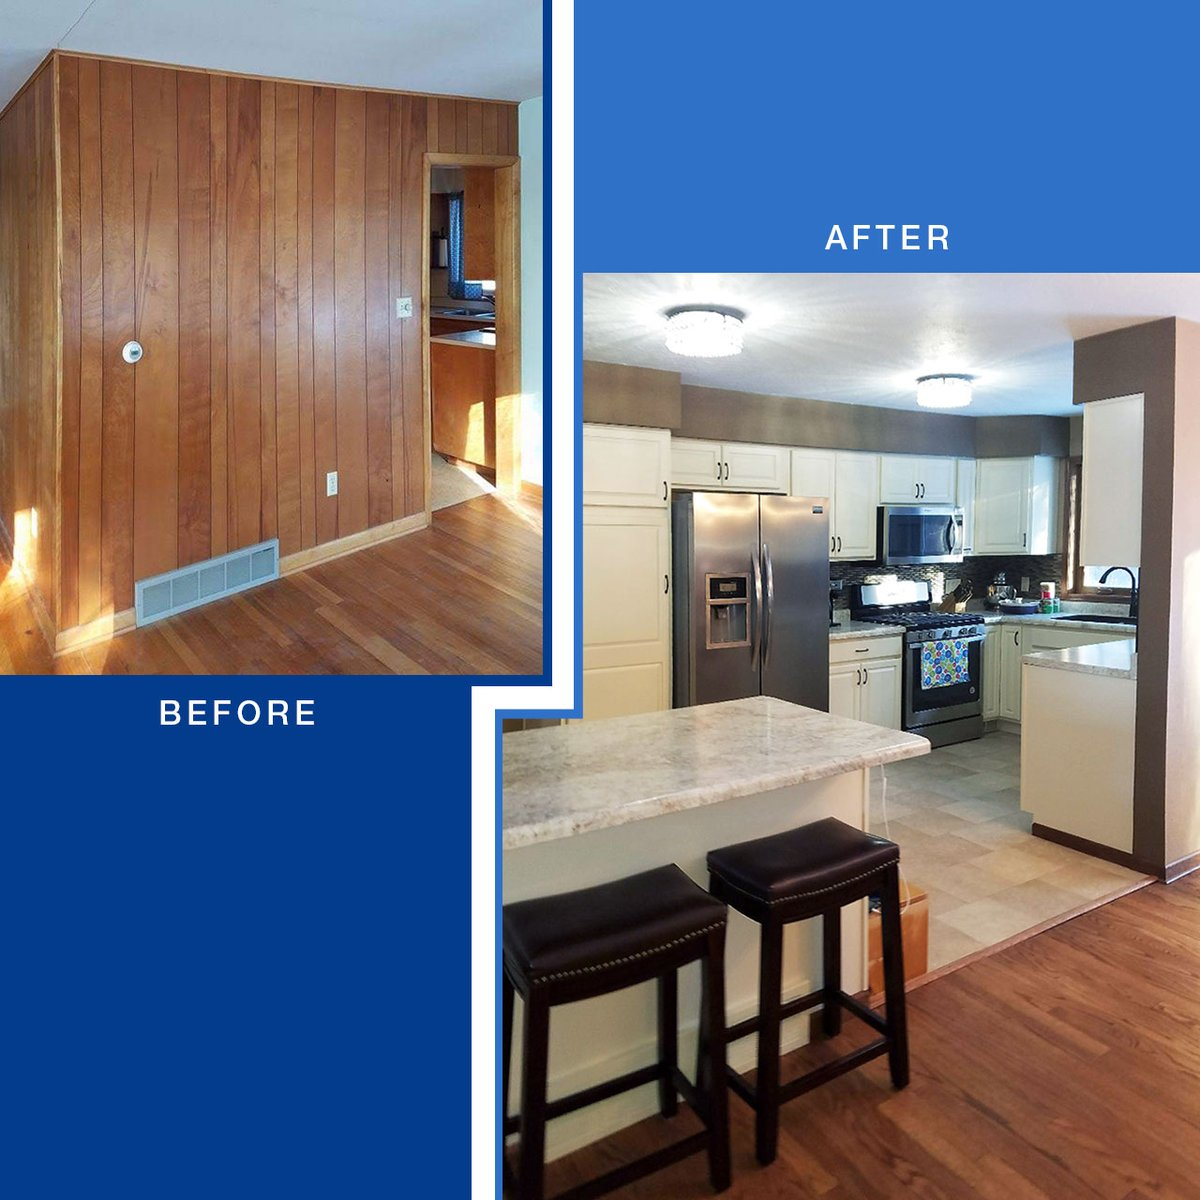 Menards On Twitter With Design Assistance From Her Local Menards Megan Was Able To Transform Her Dated Kitchen To A More Modern Open Layout See The Full Project Here Https T Co Cpz3jdva9e Menards Diy